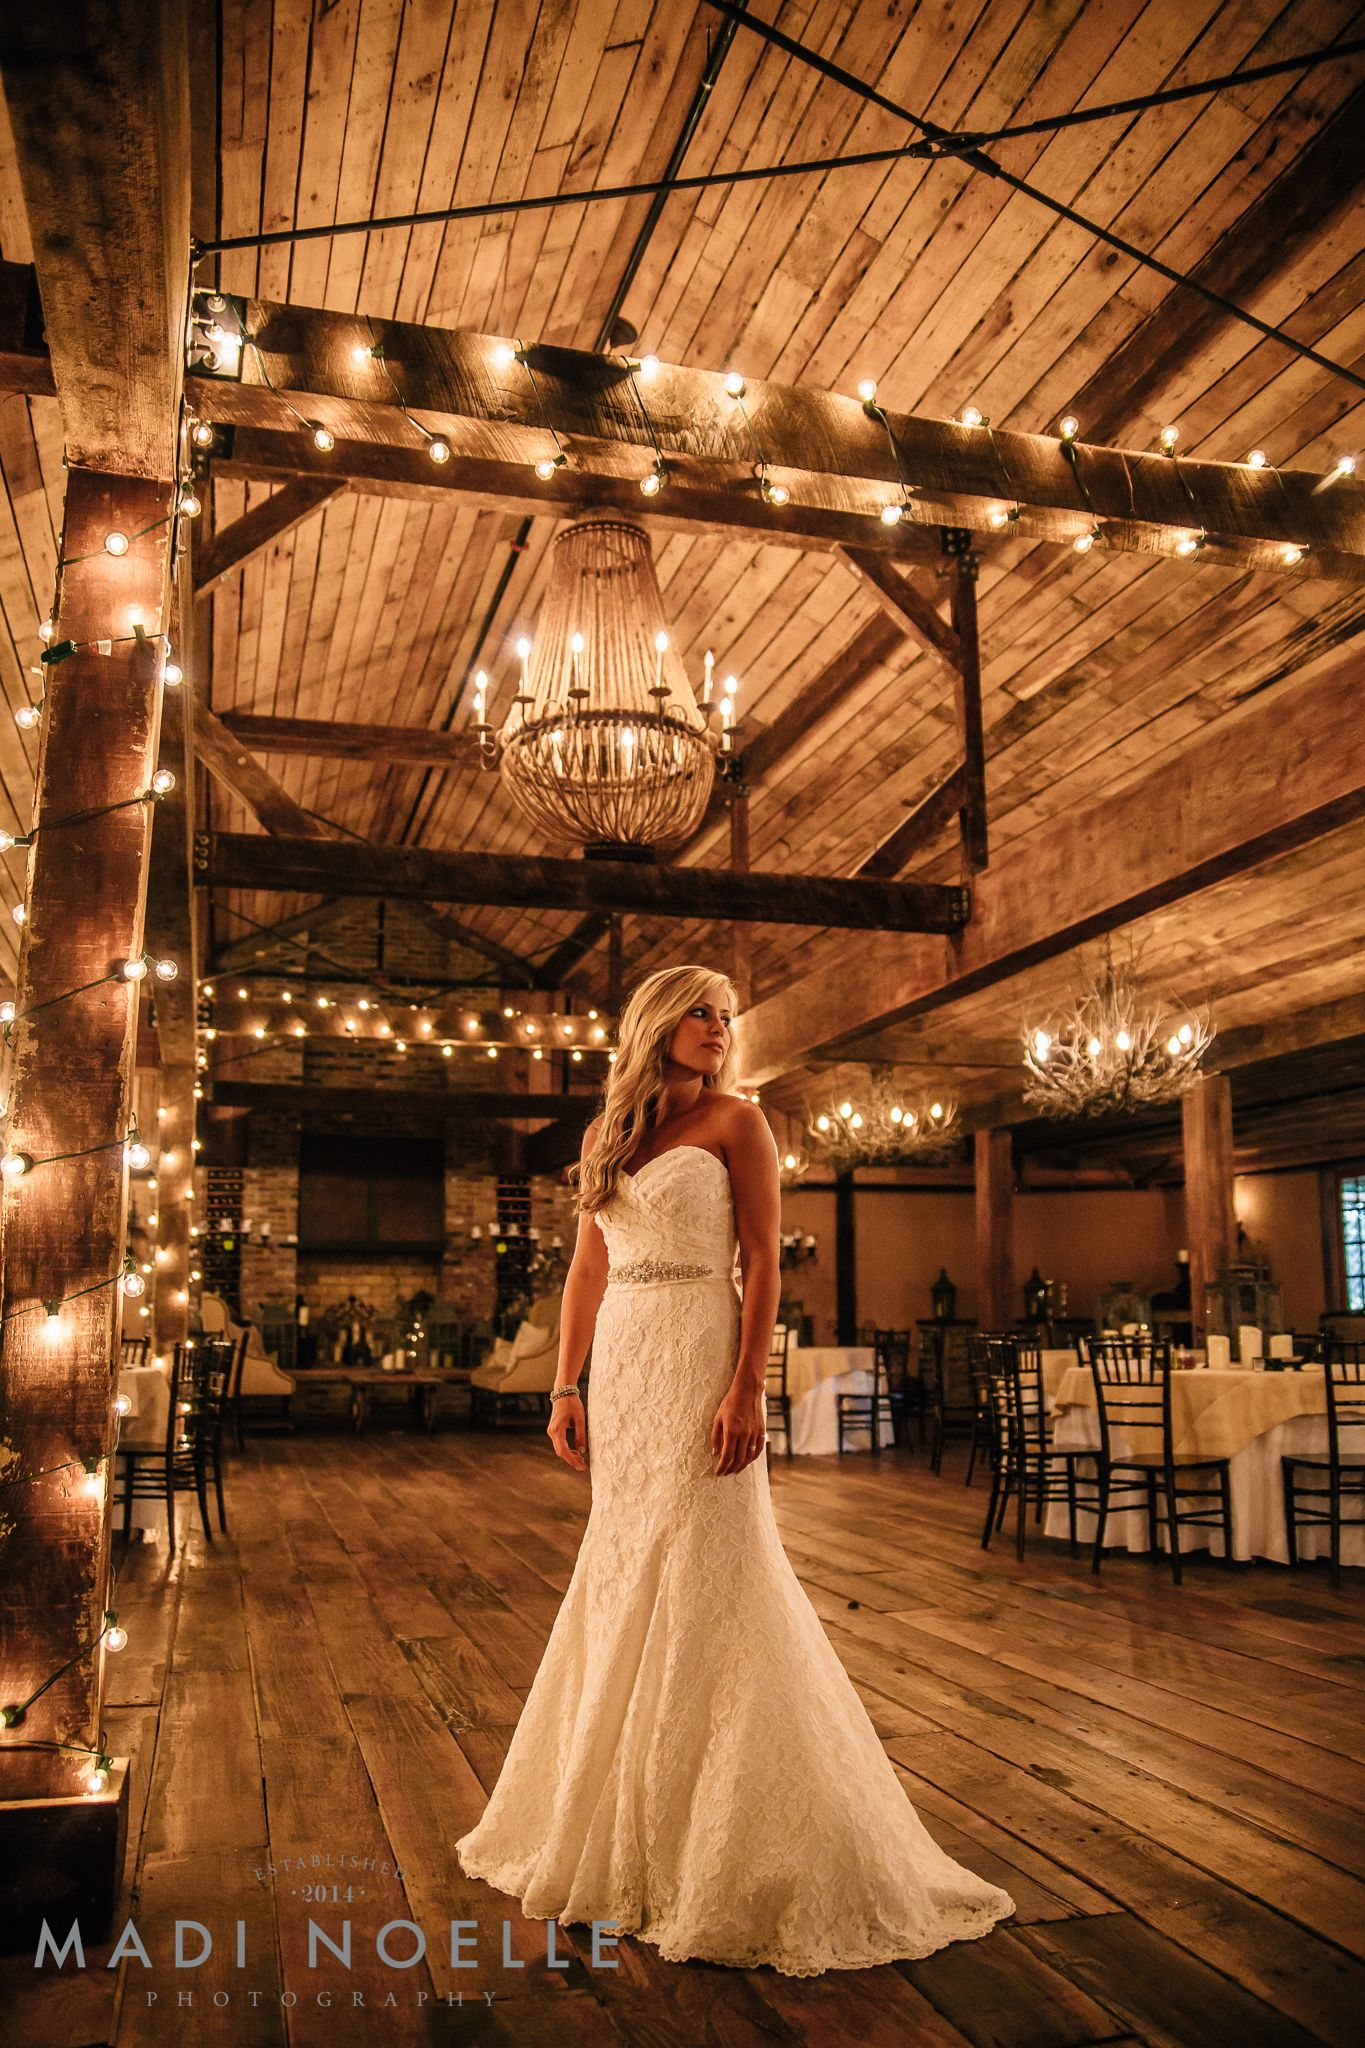 barn weddings country rustic dresses lighting hall decorations barns reception venue farm madi lights barnyard venues event southern summer noelle